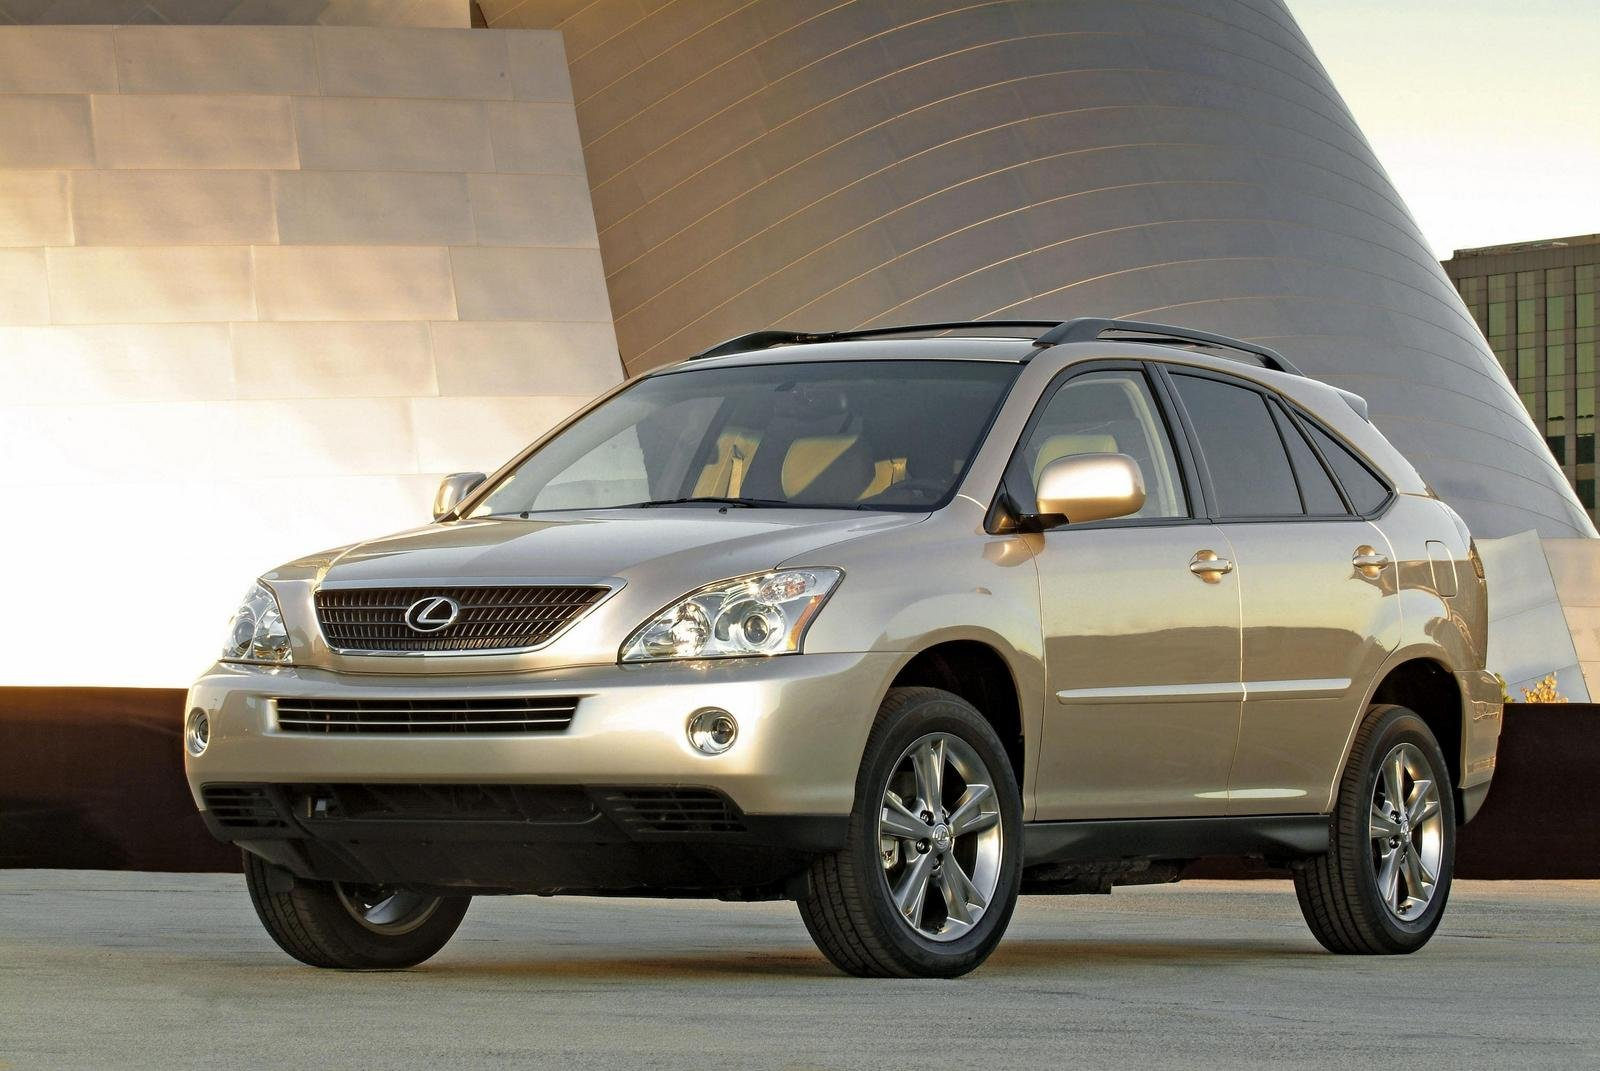 2007 lexus rx 400h picture 101489 car review top speed. Black Bedroom Furniture Sets. Home Design Ideas